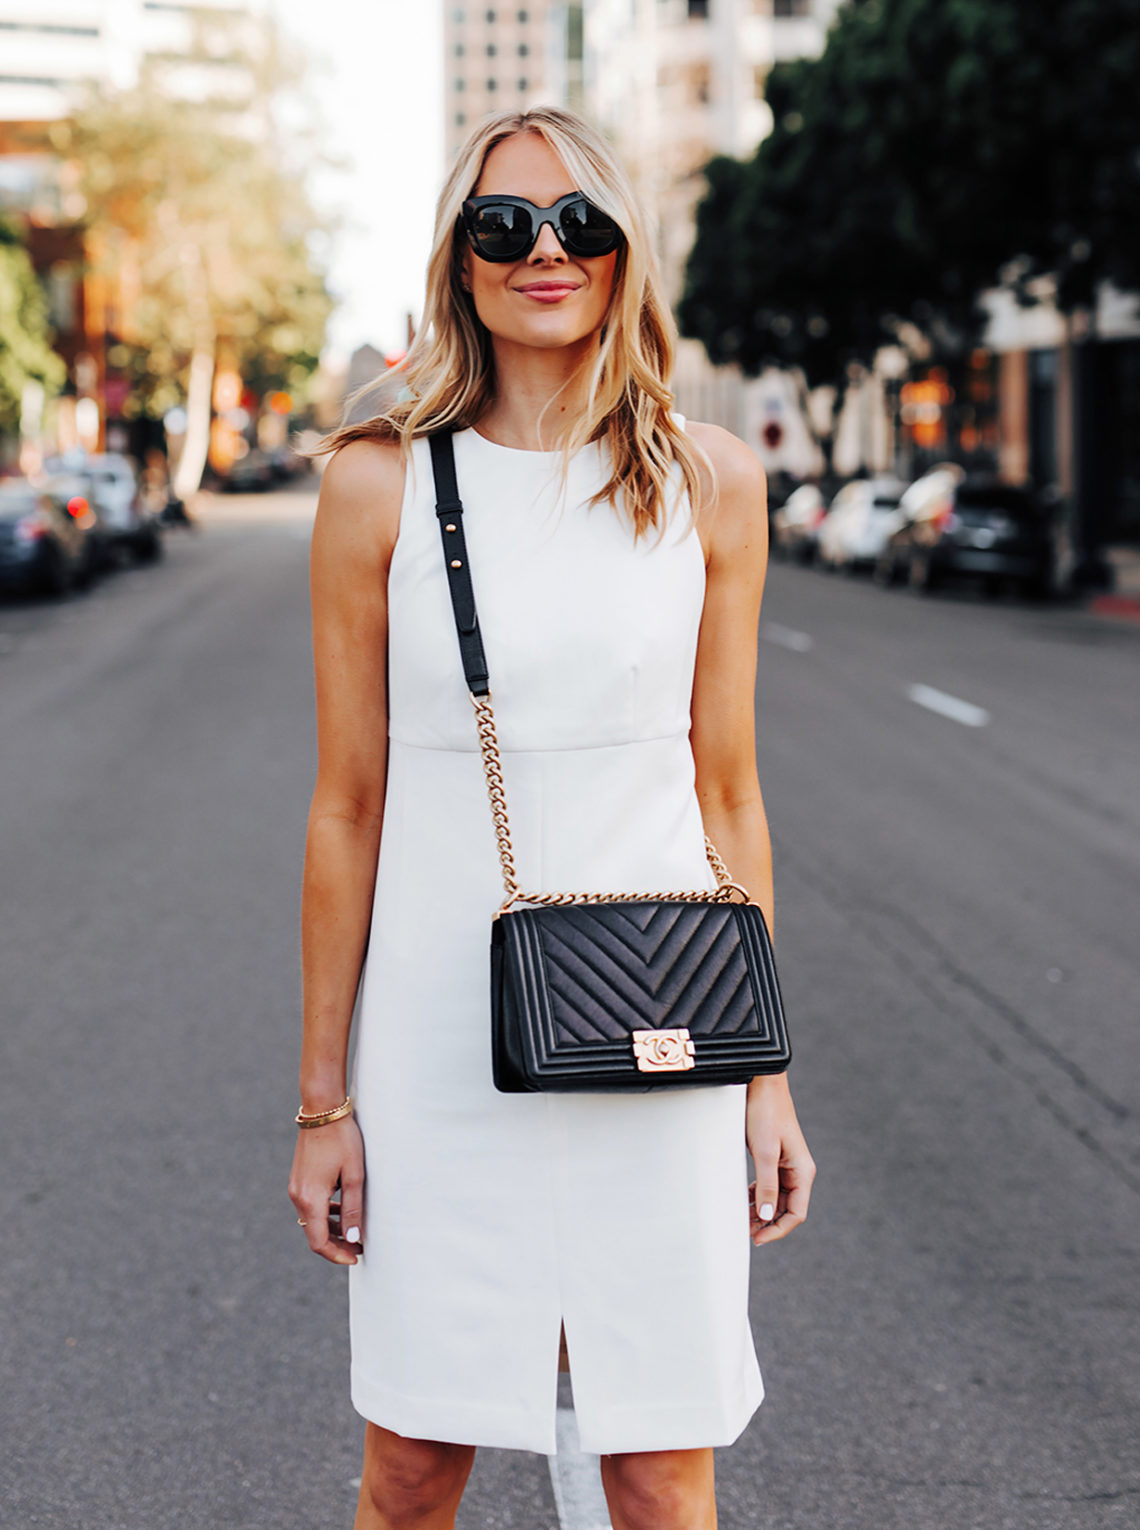 Fashion Jackson Wearing Ann Taylor White Dress Chanel Black Boy Bag Featured Image